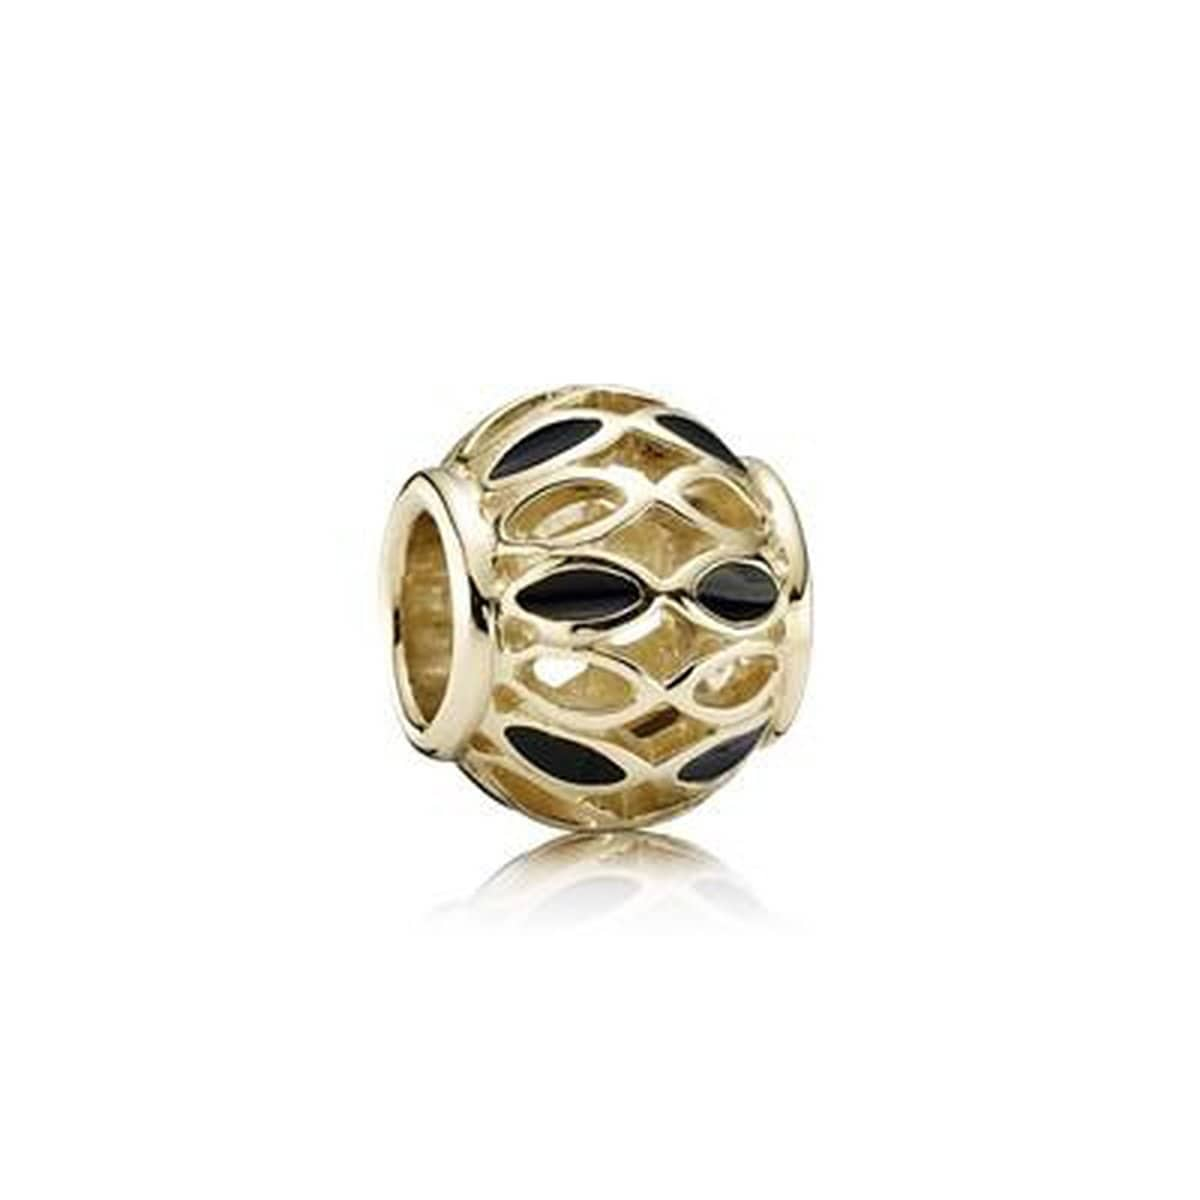 Royal Victorian 14K Gold Black Enamel Charm - 750814EN16